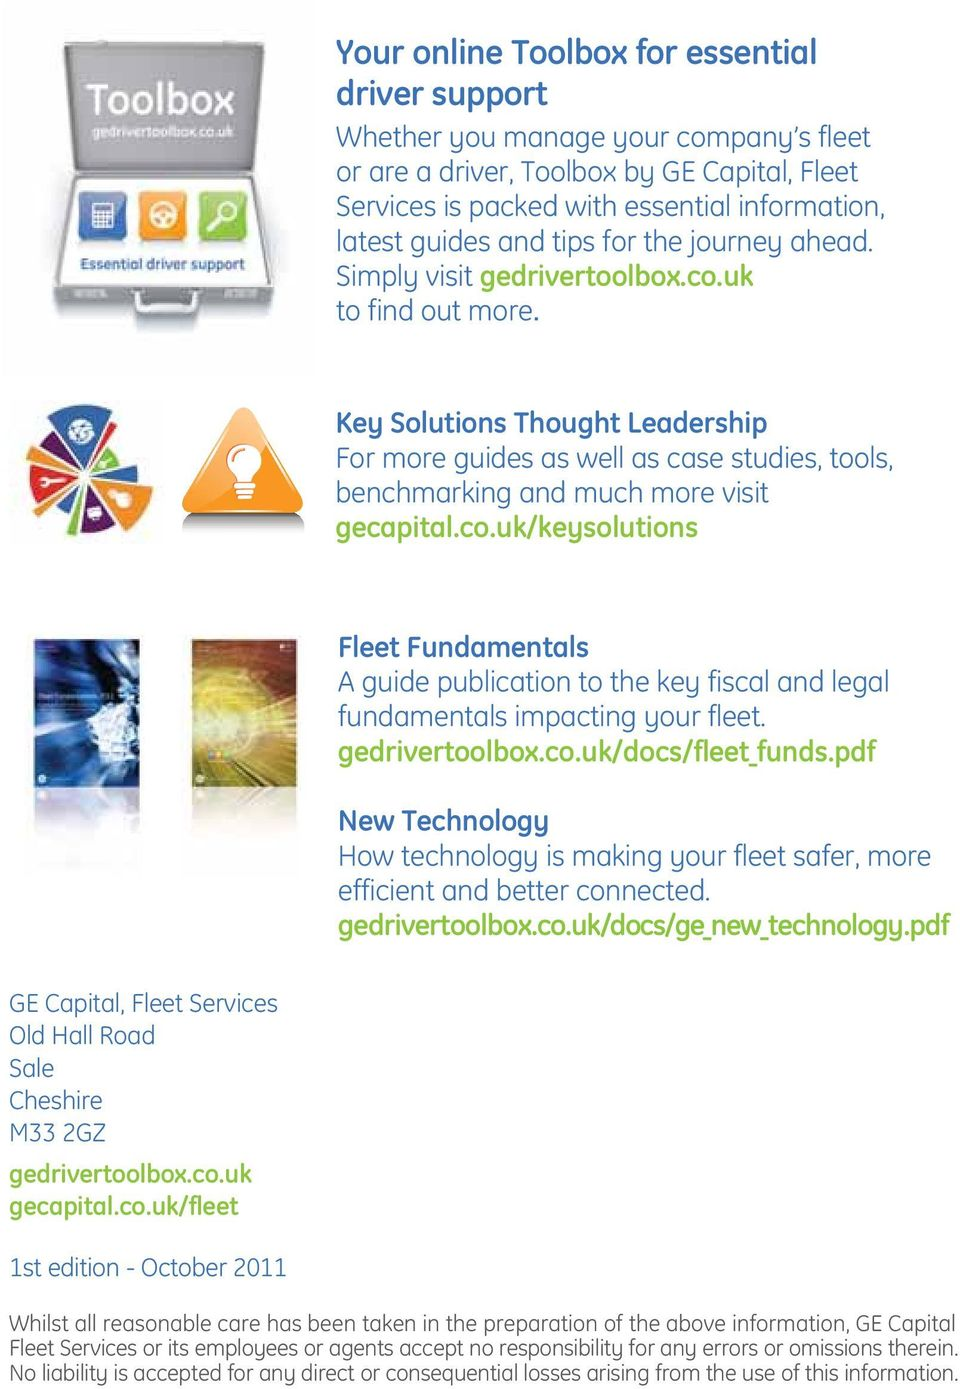 Key Solutions Thought Leadership For more guides as well as case studies, tools, benchmarking and much more visit gecapital.co.